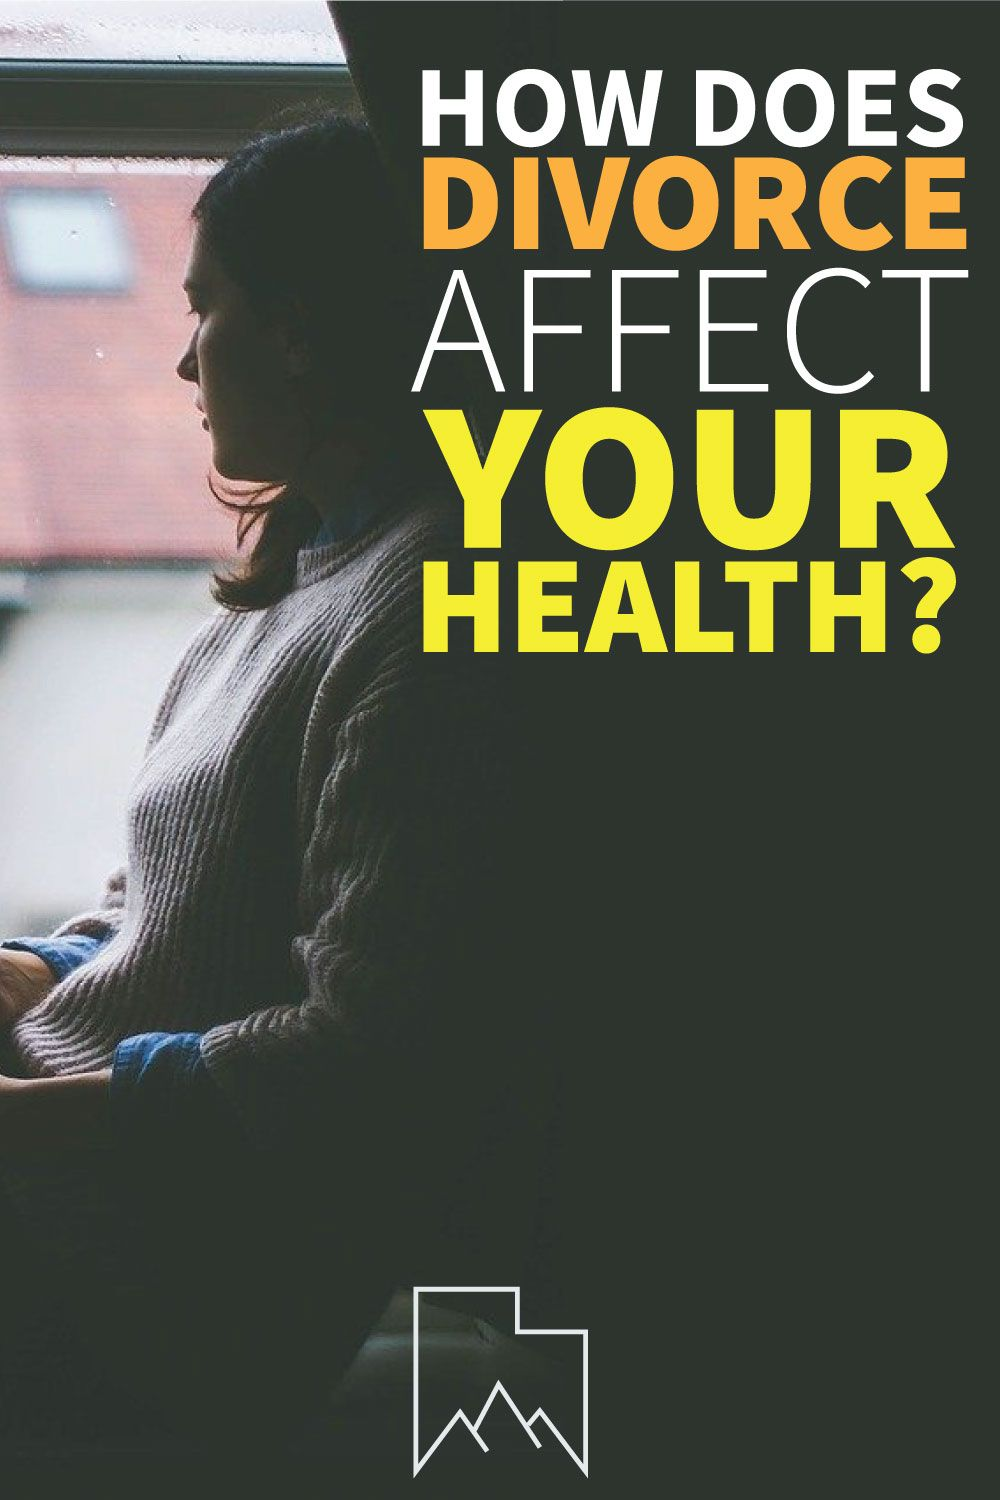 Your physical health and your financial health often go